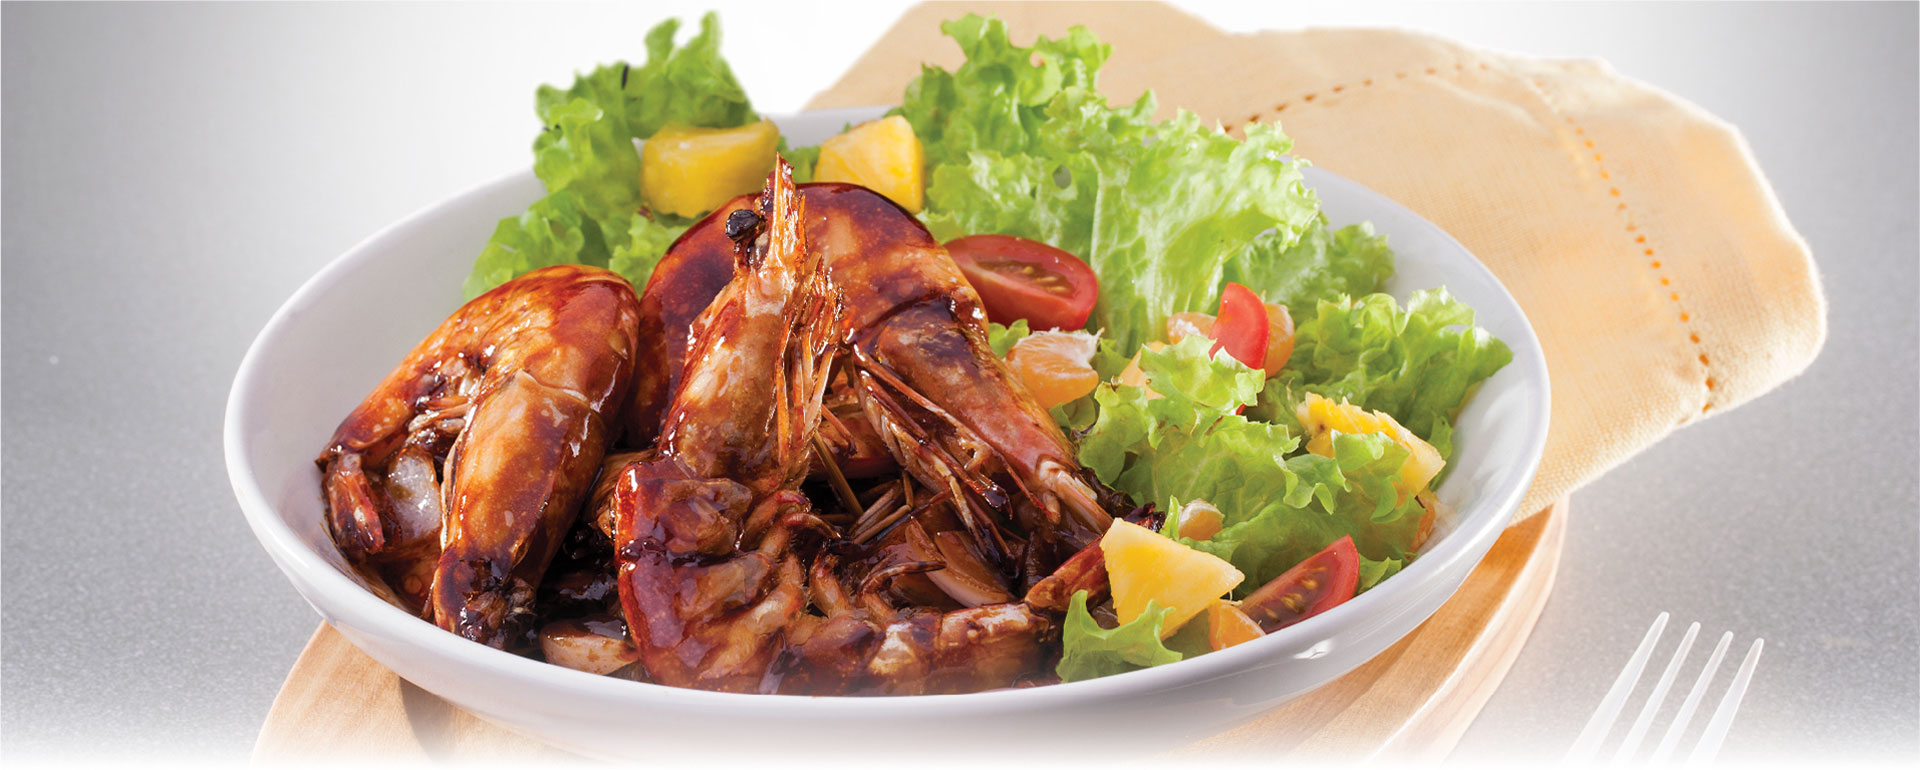 Big Prawns In Thick Soy Sauce